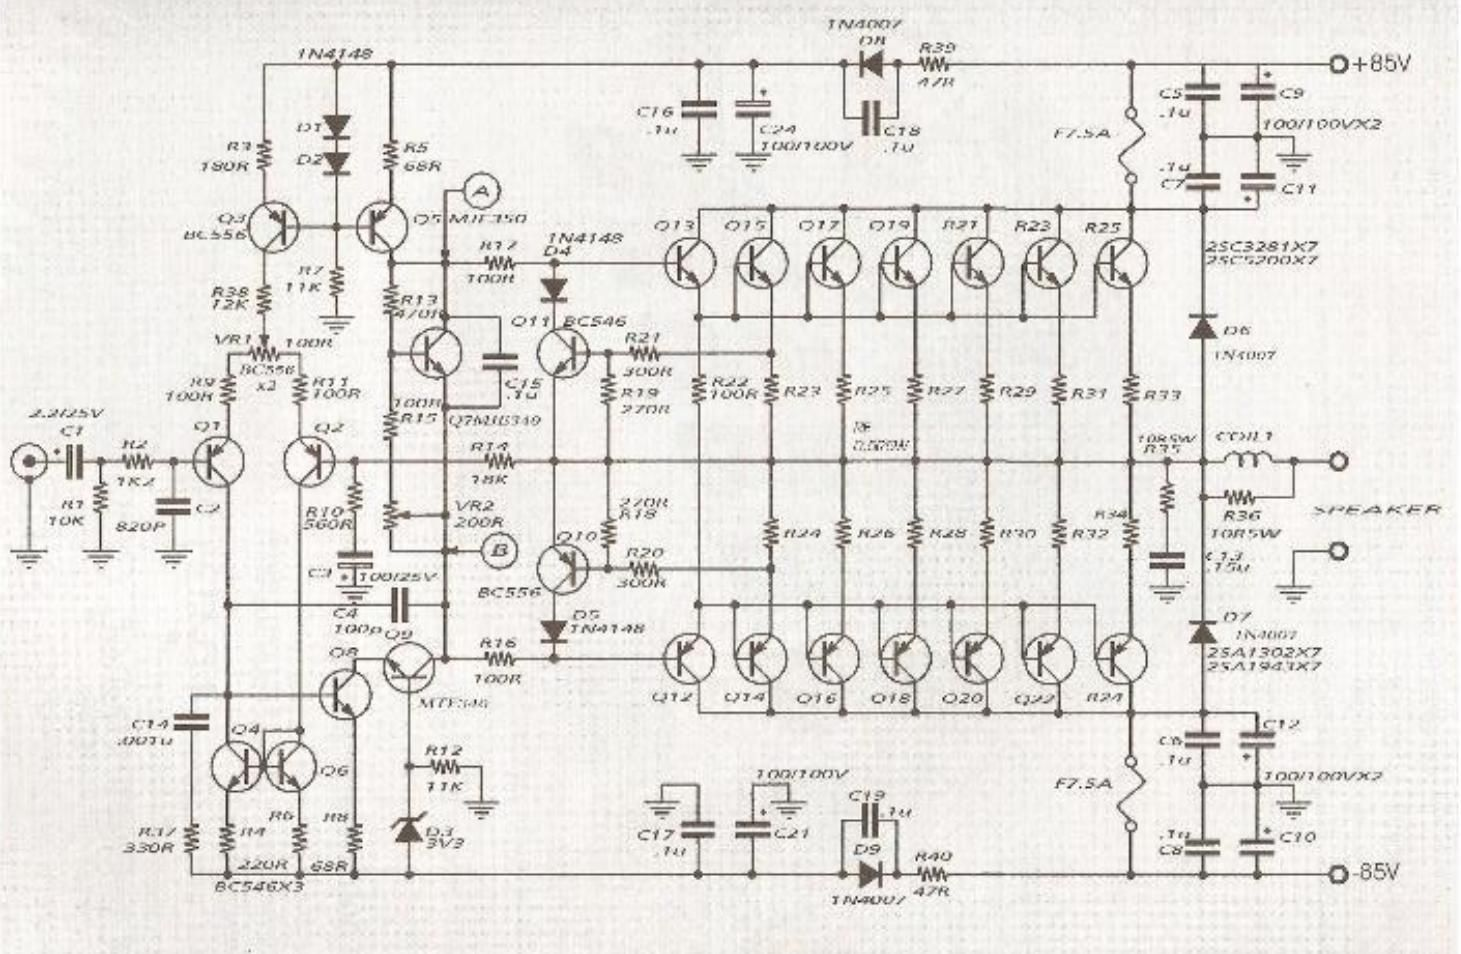 small resolution of 5000 watts amplifier schematic diagrams wiring diagram description 5000 watt amplifier circuit diagram pdf 5000 watts amplifier circuit diagrams